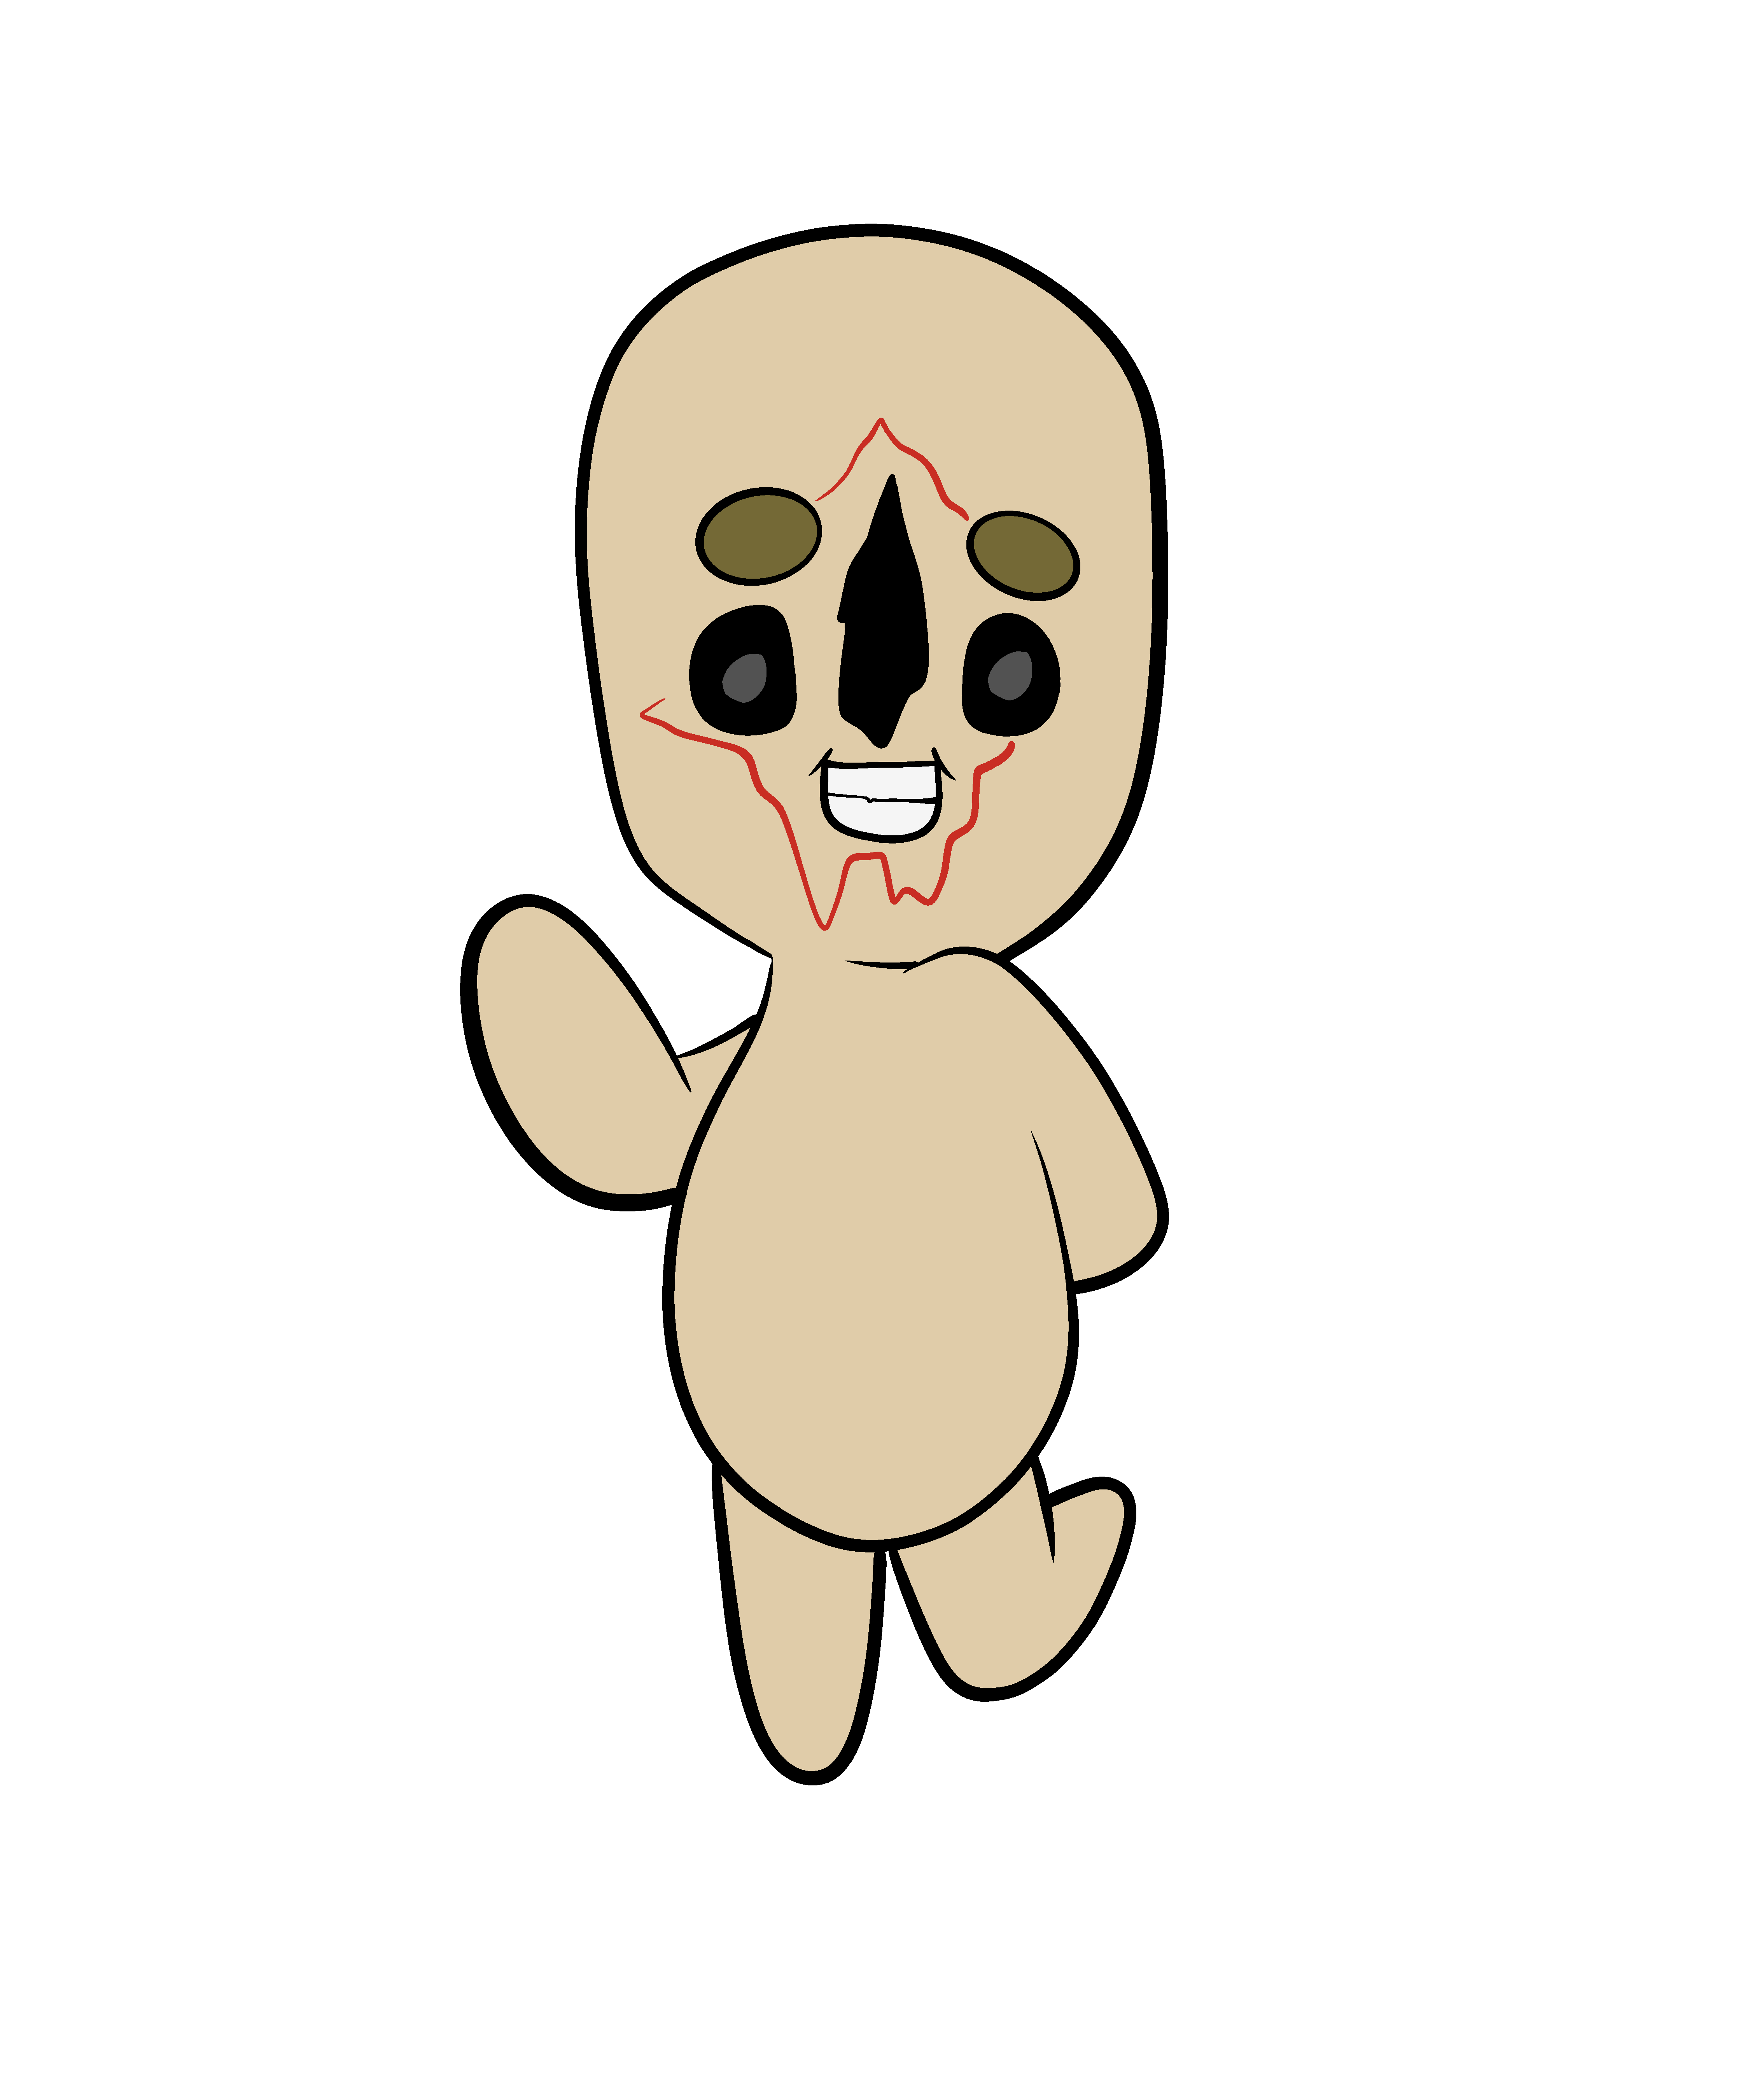 Scp 173 Secure Contain Protect Monster Cute Peanut Scp Cute Drawings Scp 049